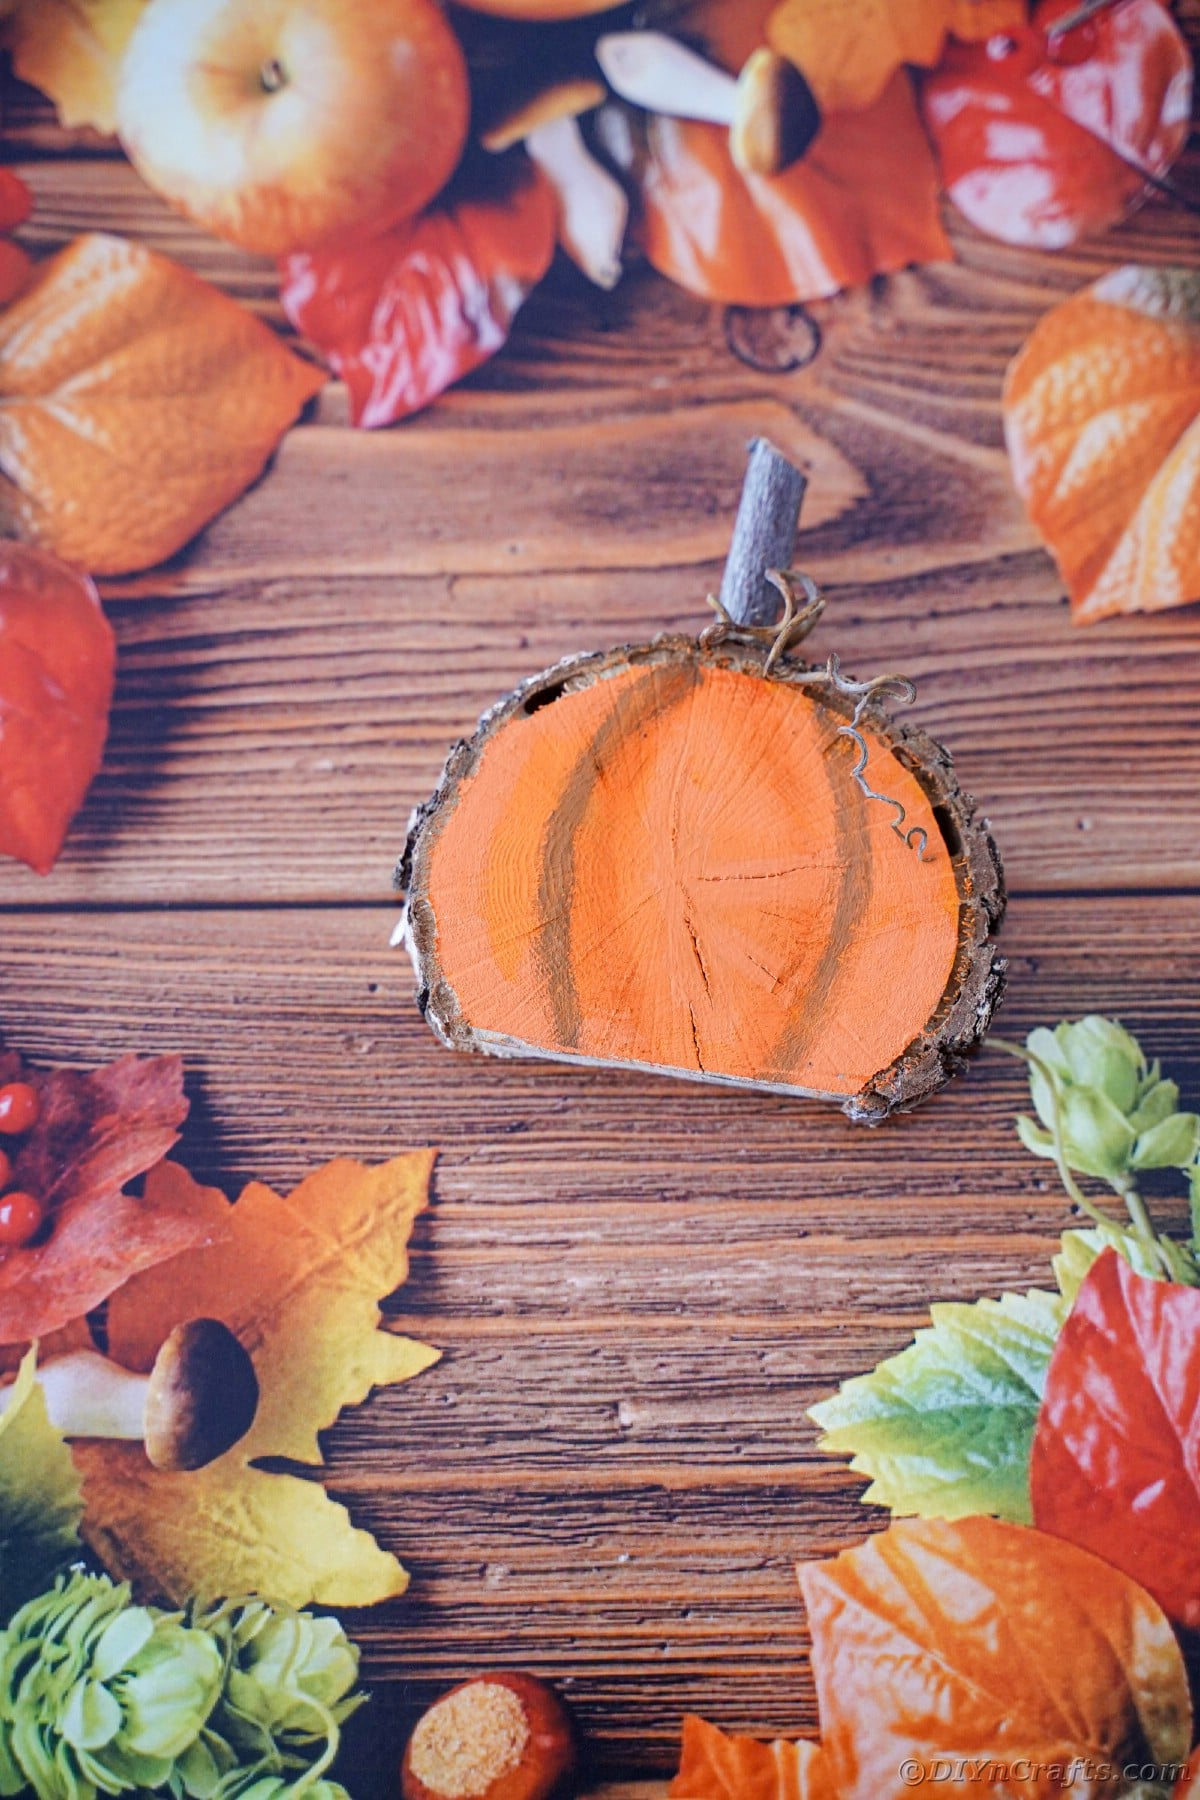 Wood slice pumpkin on wood table with fake fall decor surrounding it